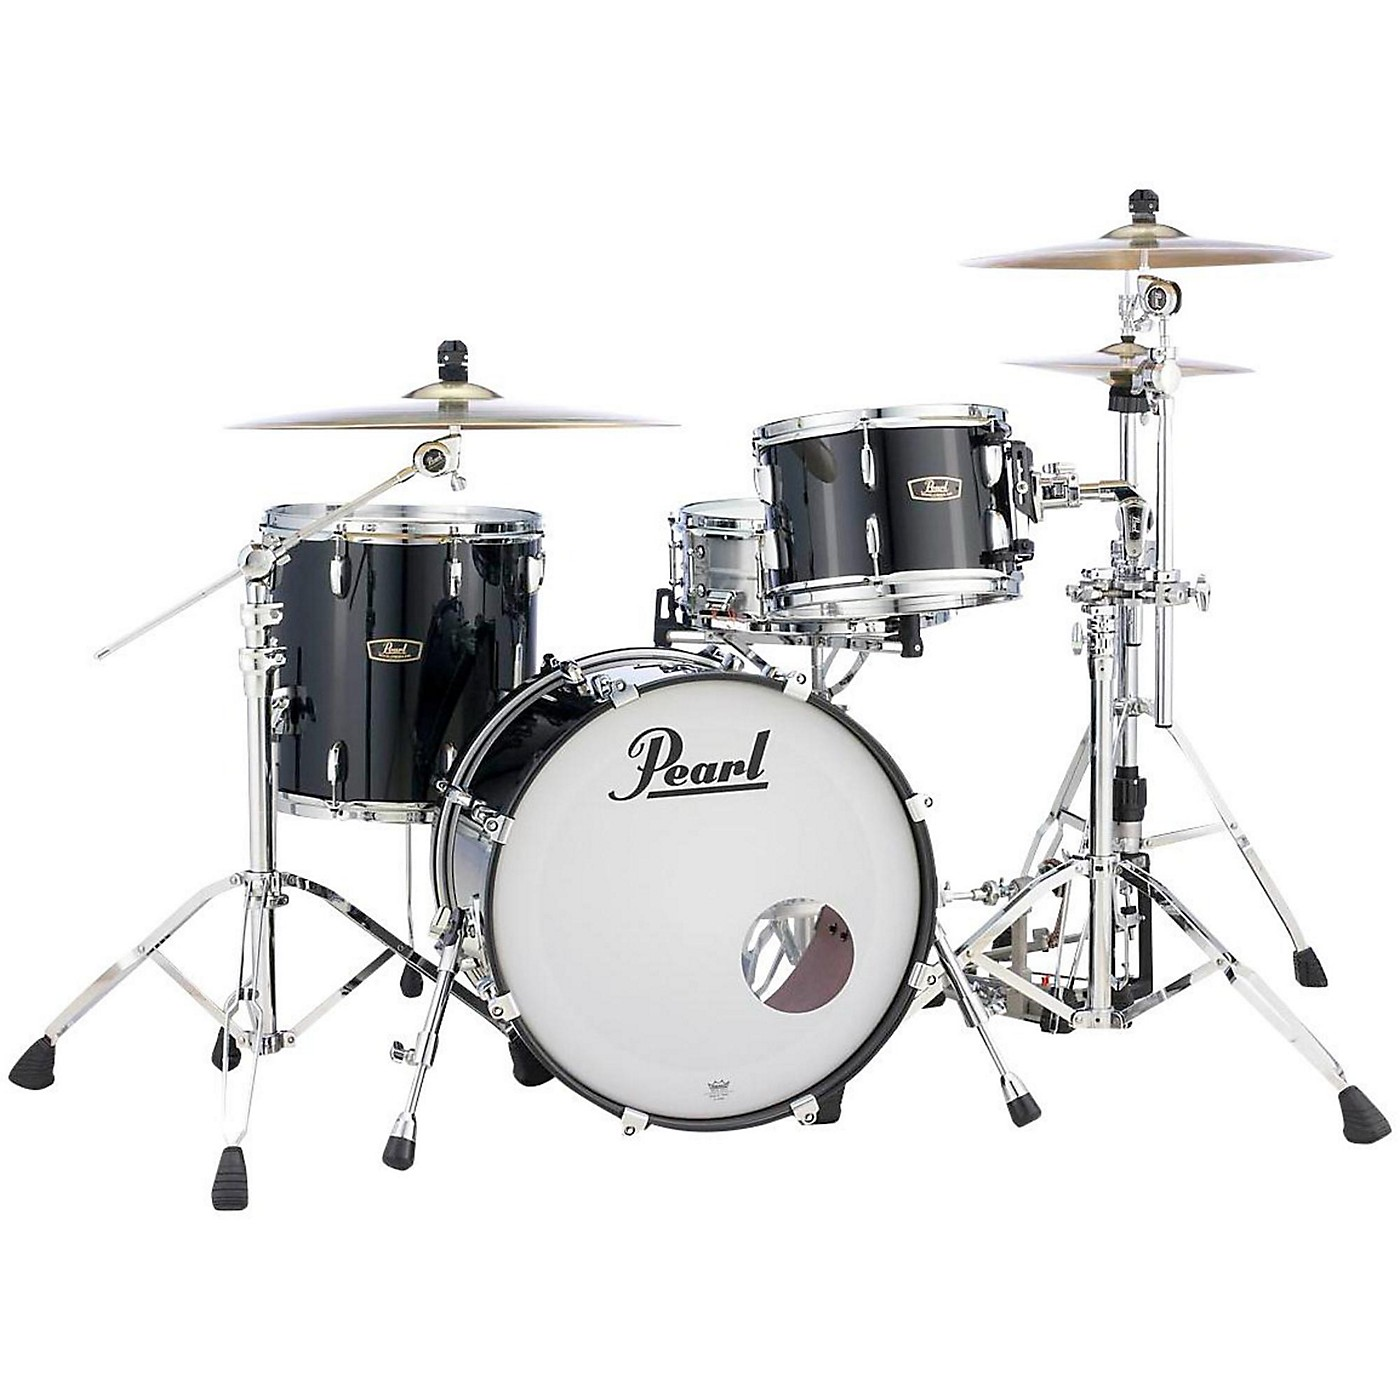 Pearl Vintage Hybrid Wood Fiberglass Series 3-Piece Shell Pack with 20 in. Bass Drum thumbnail